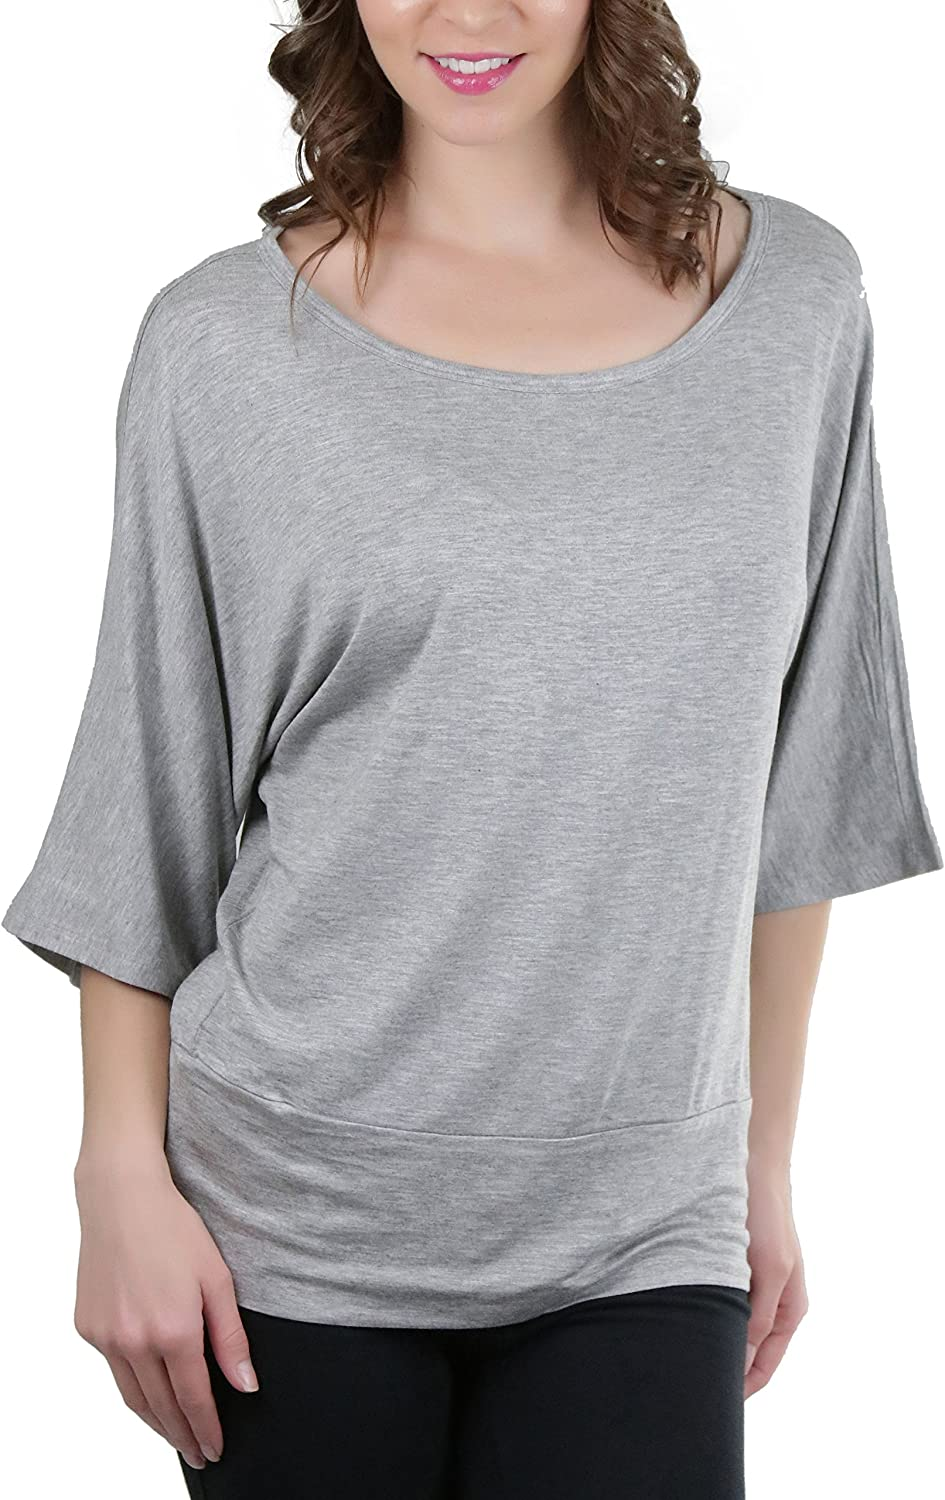 New Women/'s Dolman Long Sleeve Lightweight Relaxed Casual Basic Top w Banded Hem